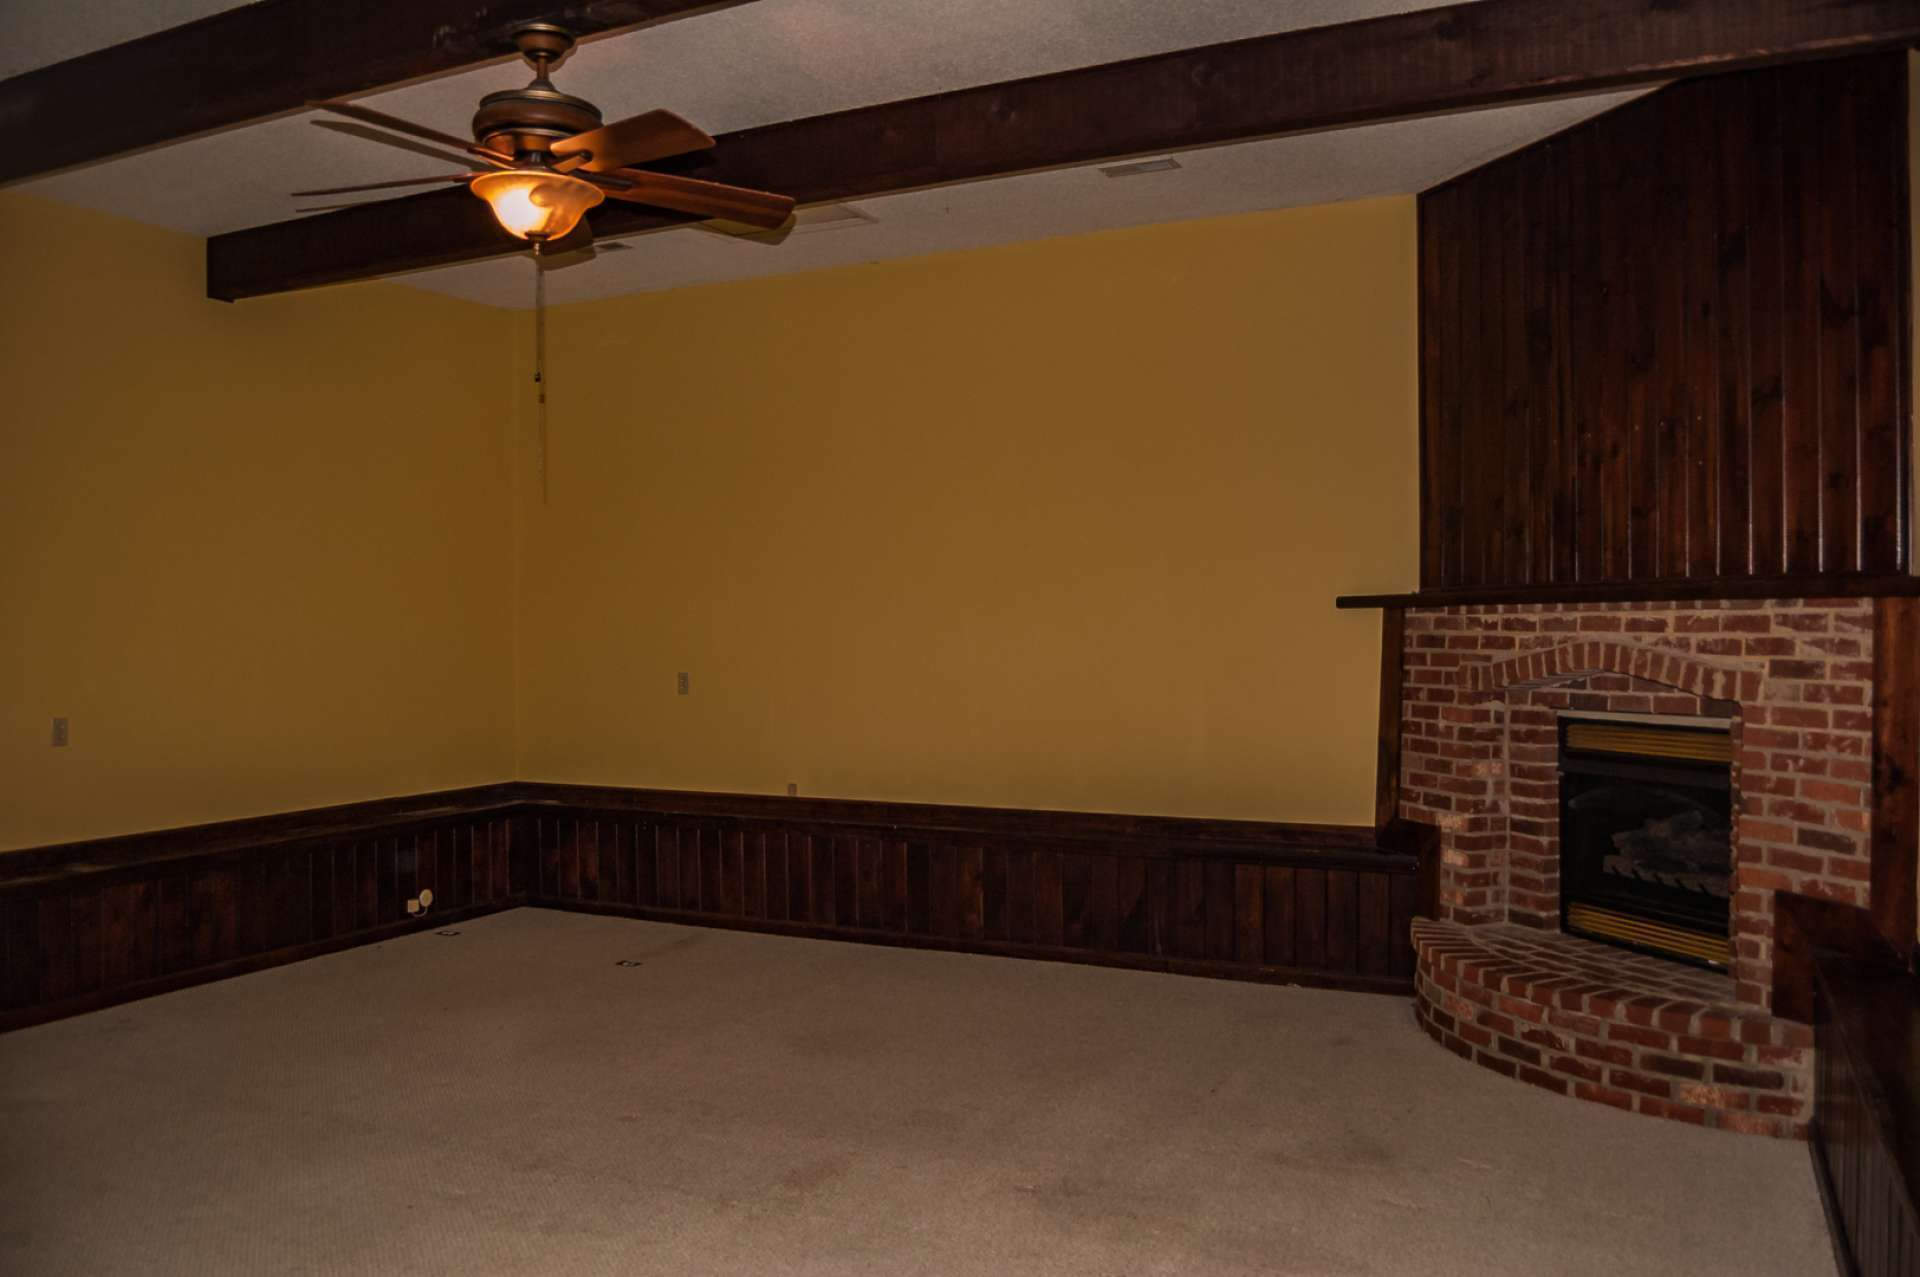 Additions include this  large family or play rooom with a fireplace, and a 2-car attached garage with room for extra storage.